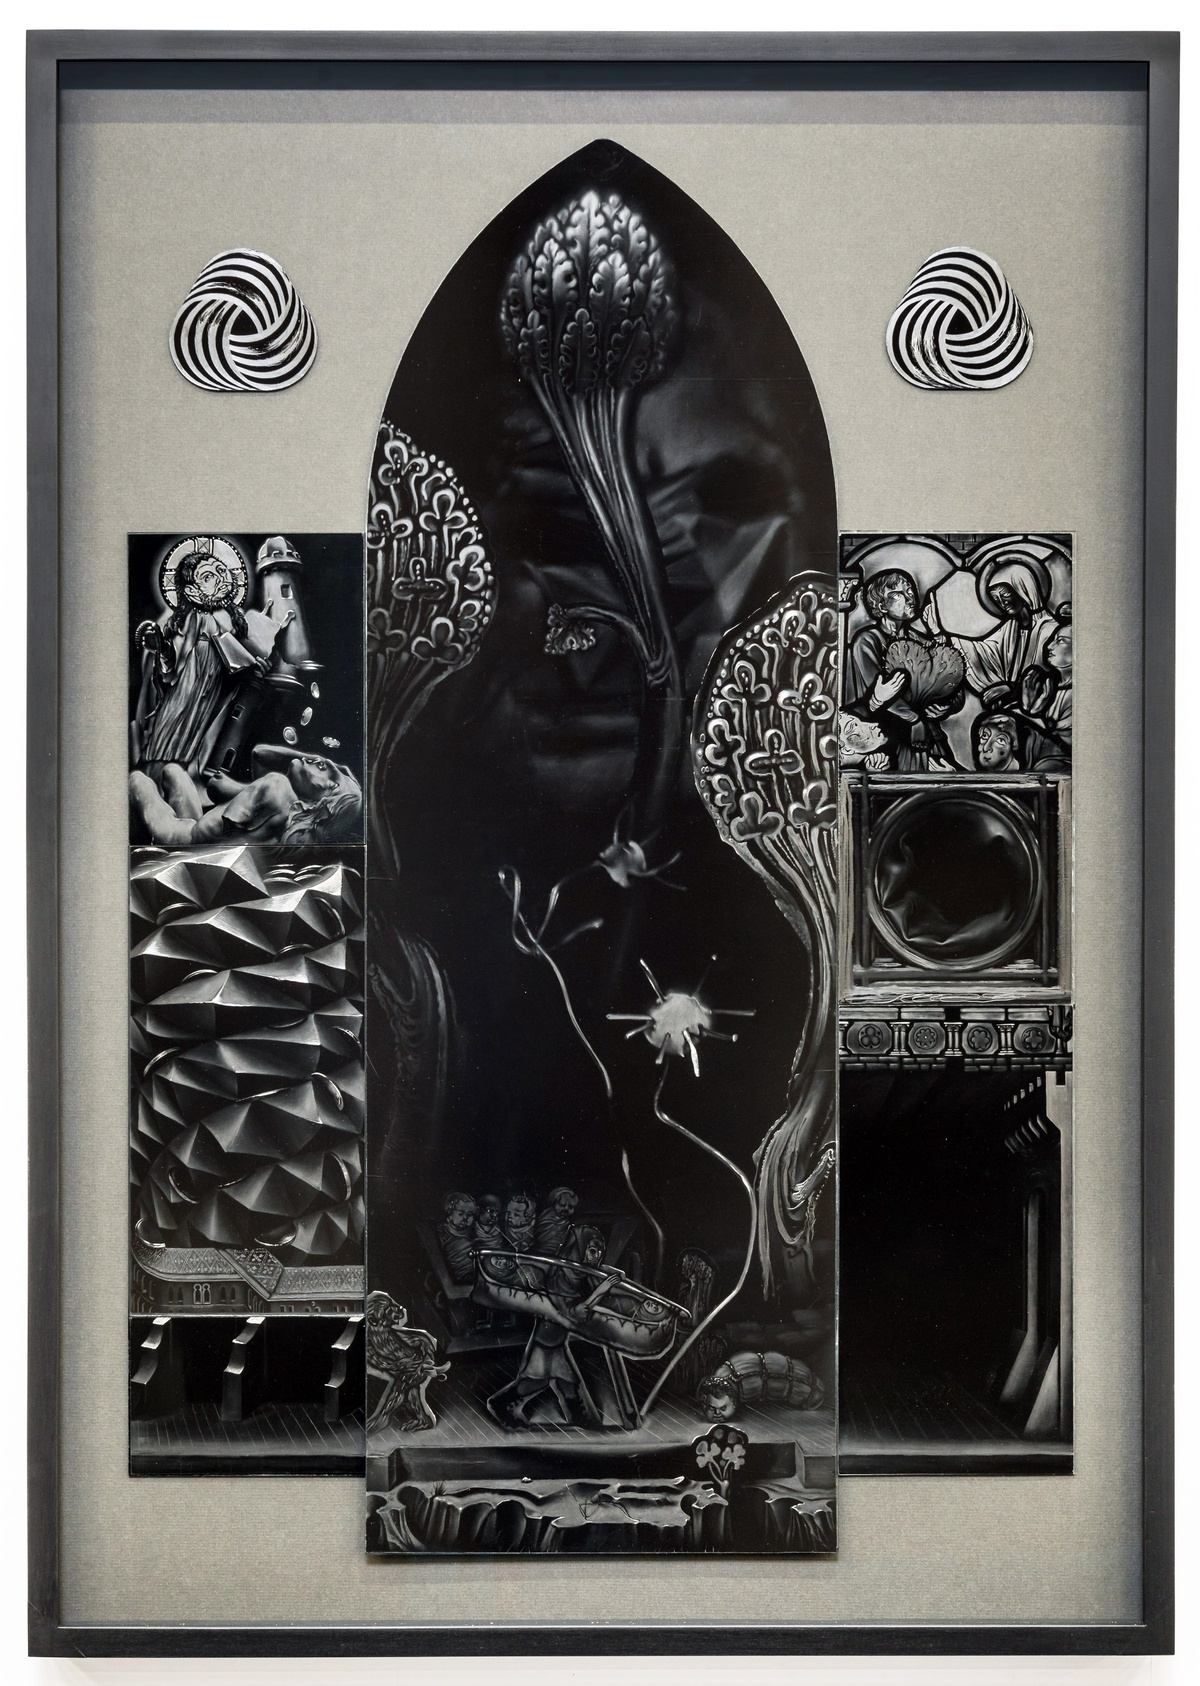 Robert McNally  Bonafide Malafide, 2016  Graphite on ultra-black carbon nanotube coated aluminium  102 x 72 cm  40 1/8 x 28 3/8 in  (Framed)  Courtesy of David Risley gallery Copenhagen